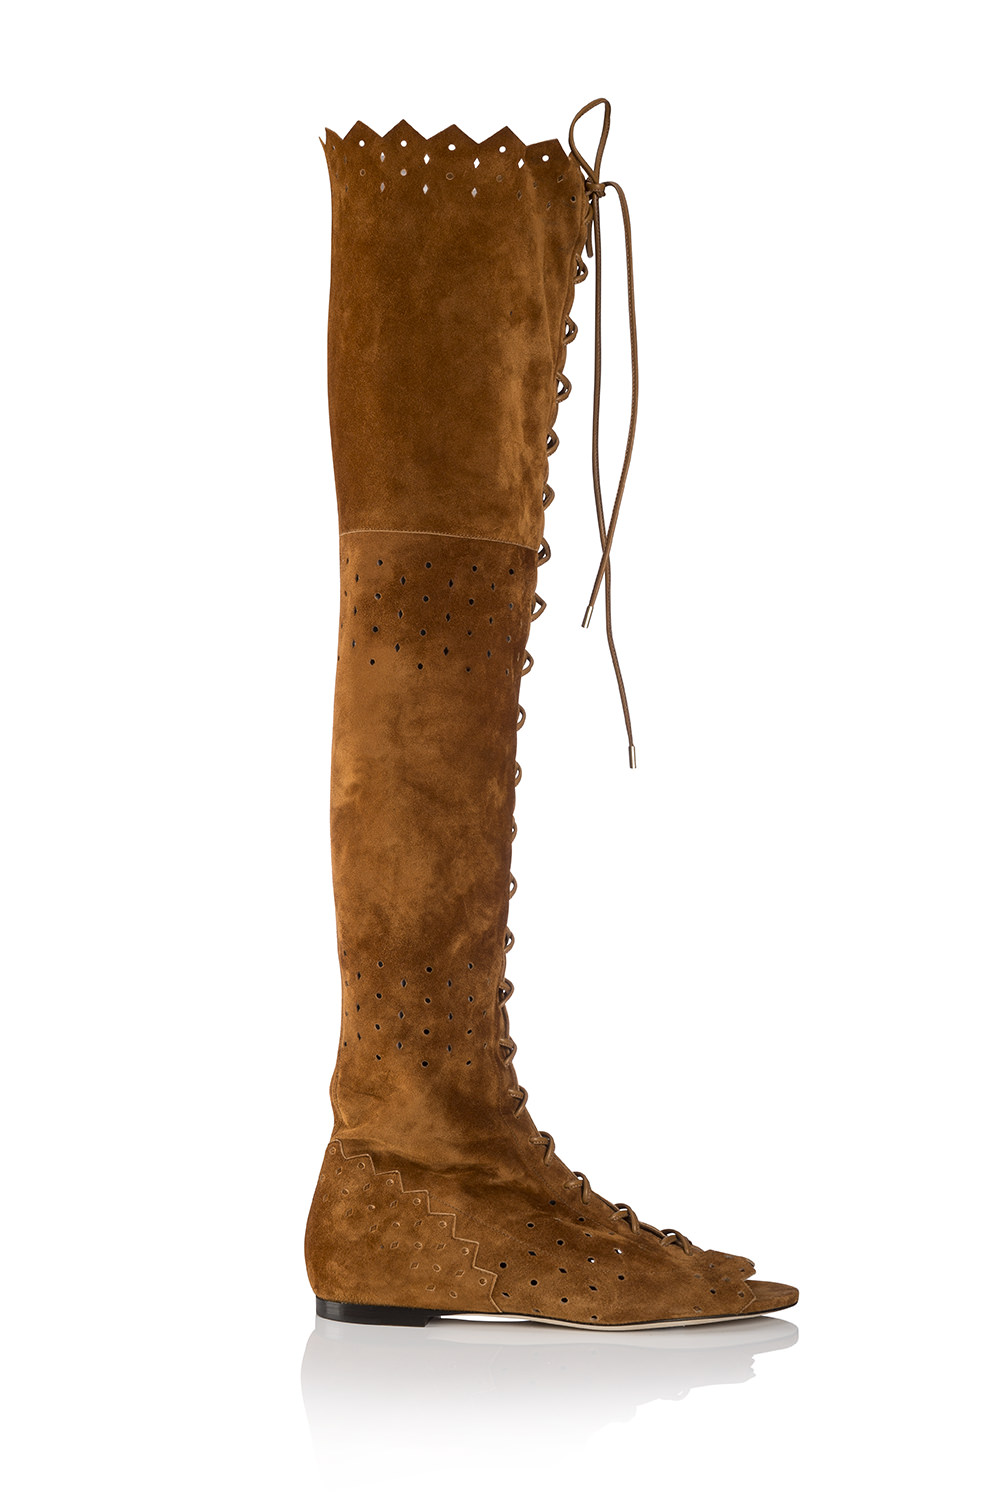 Suede thigh-high boot, JIMMY CHOO.